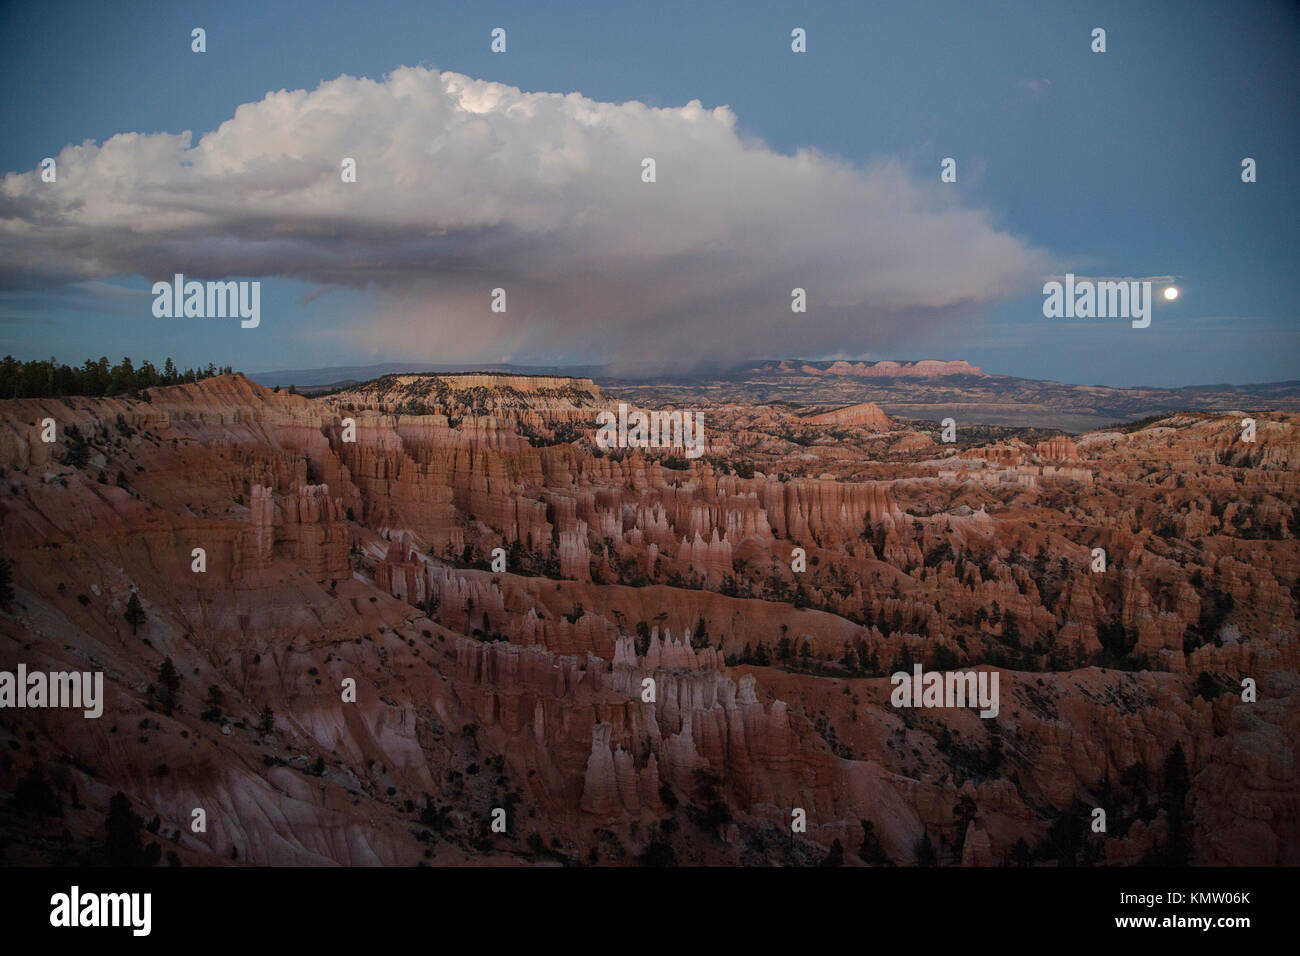 A view of Bryce Canyon with a storm cloud in the distance at dusk. - Stock Image